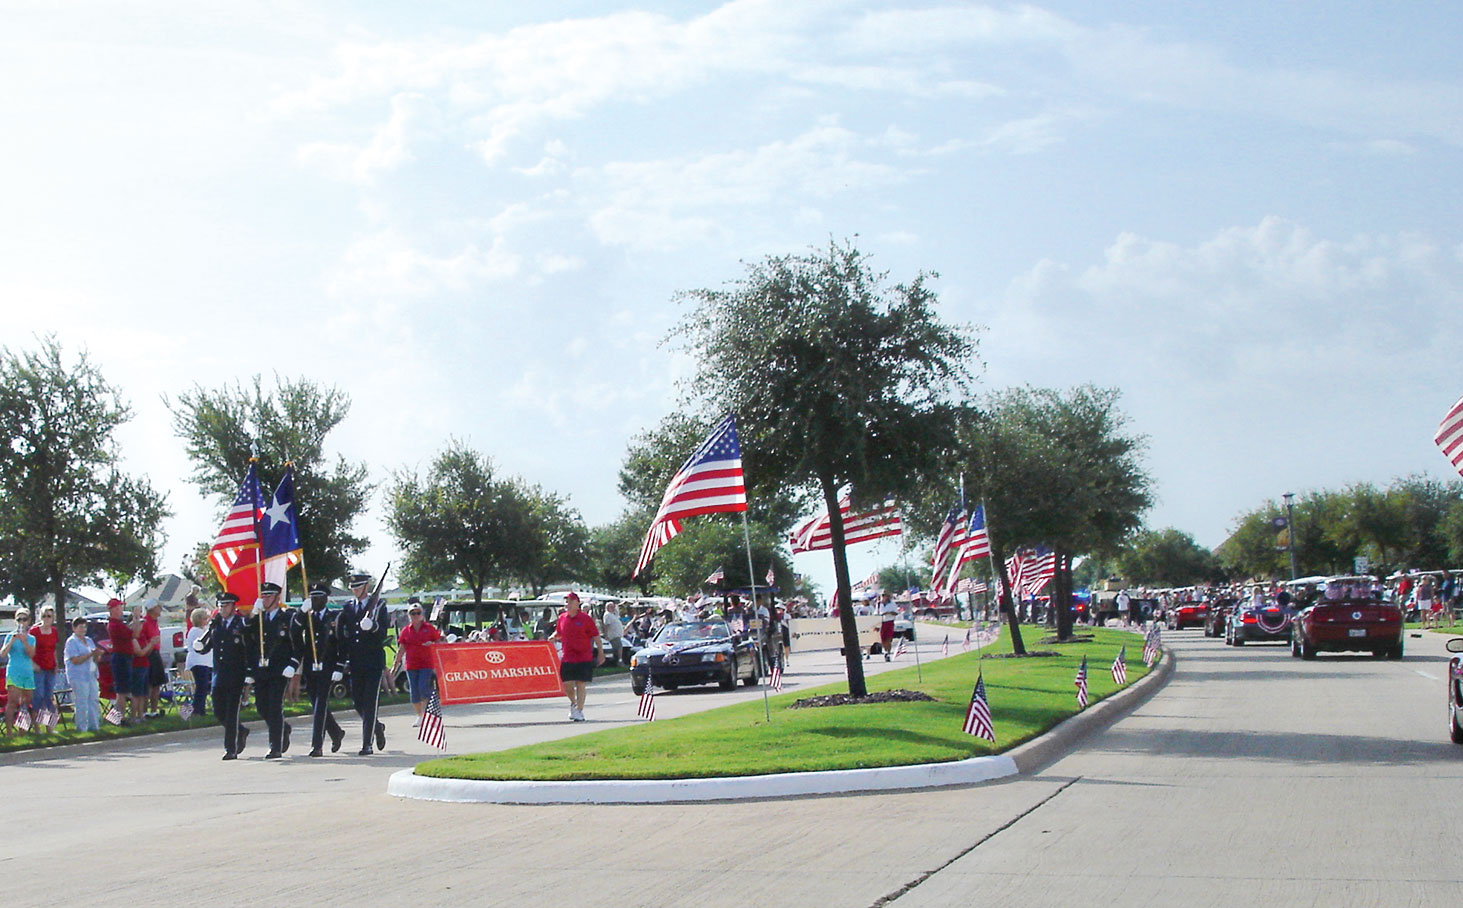 Sign up to be in the 4th of July parade